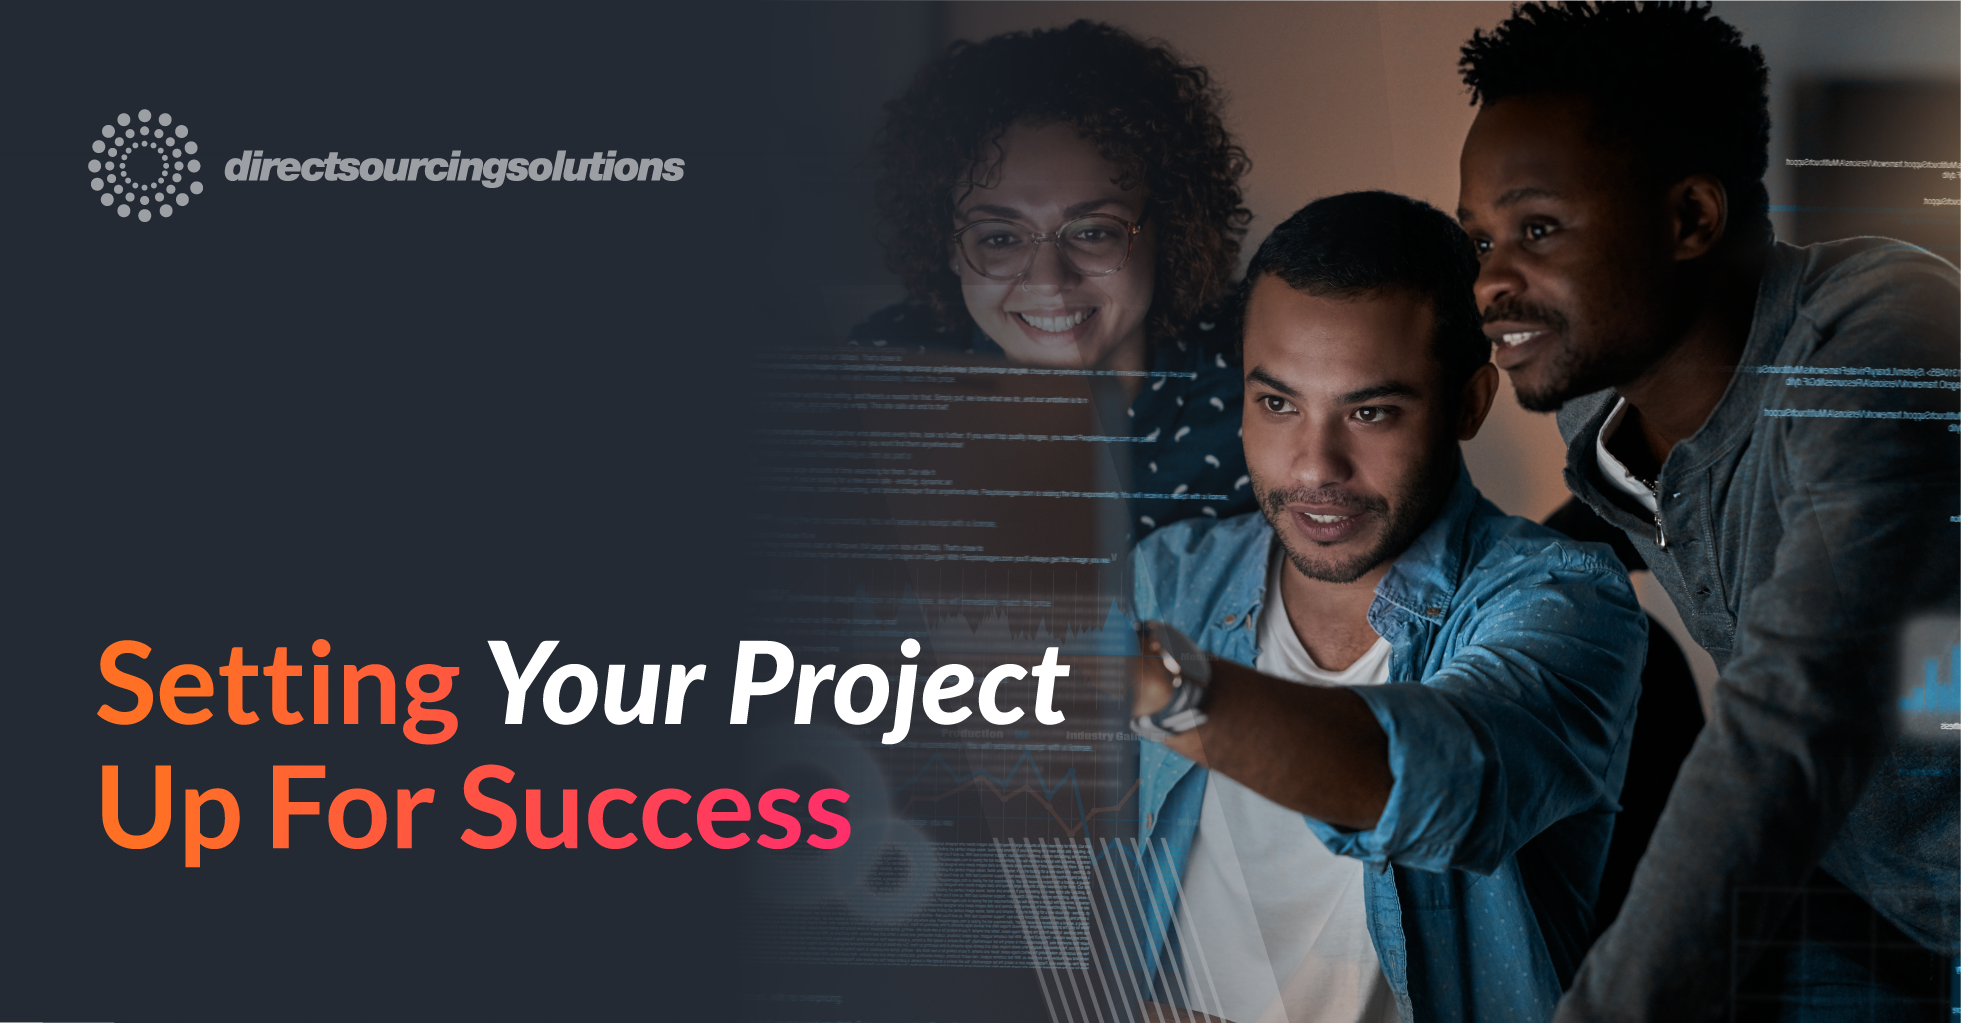 Setting your project up for success